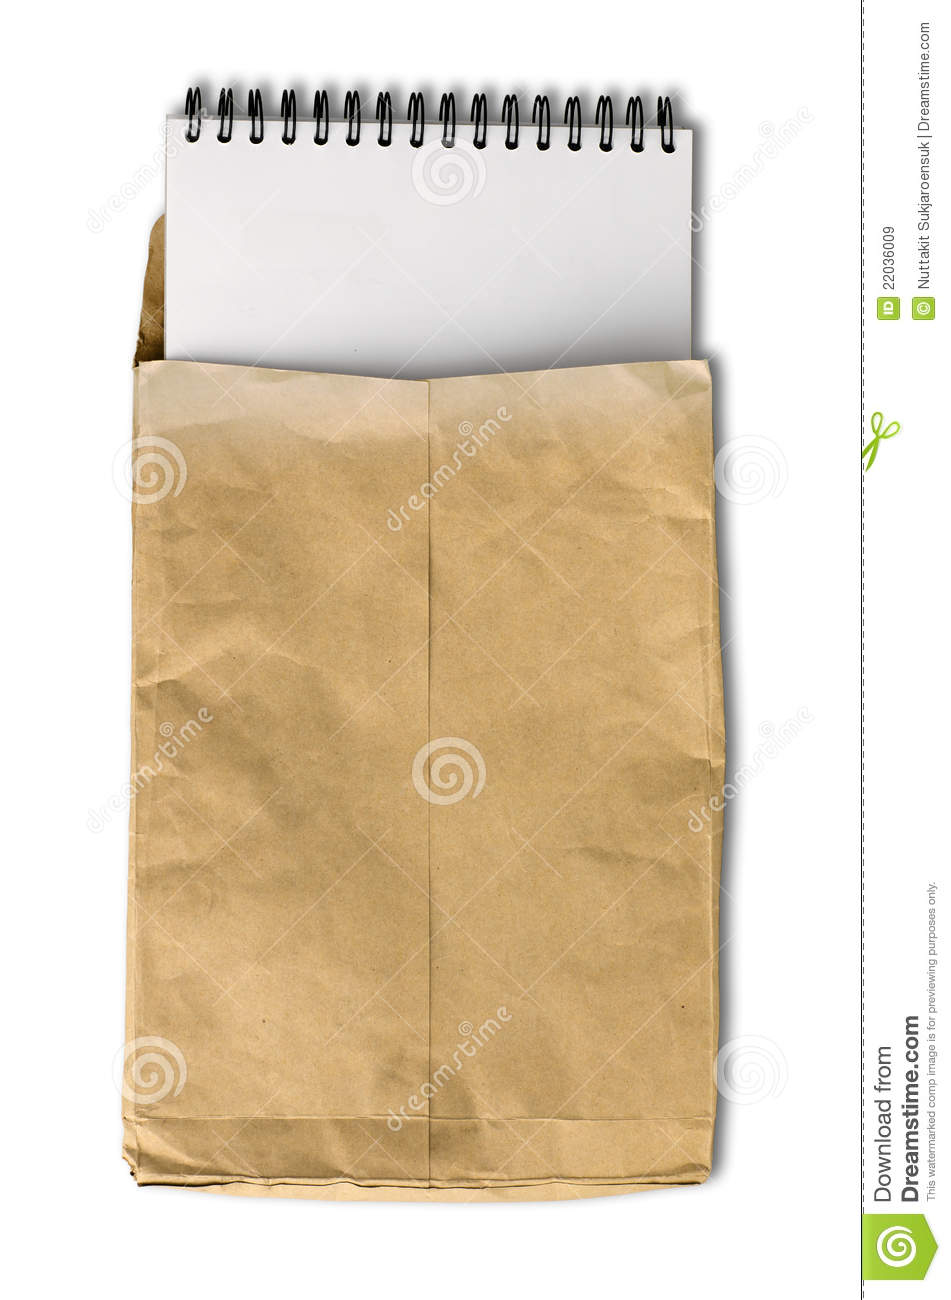 White note book in wrinkled brown paper envelope